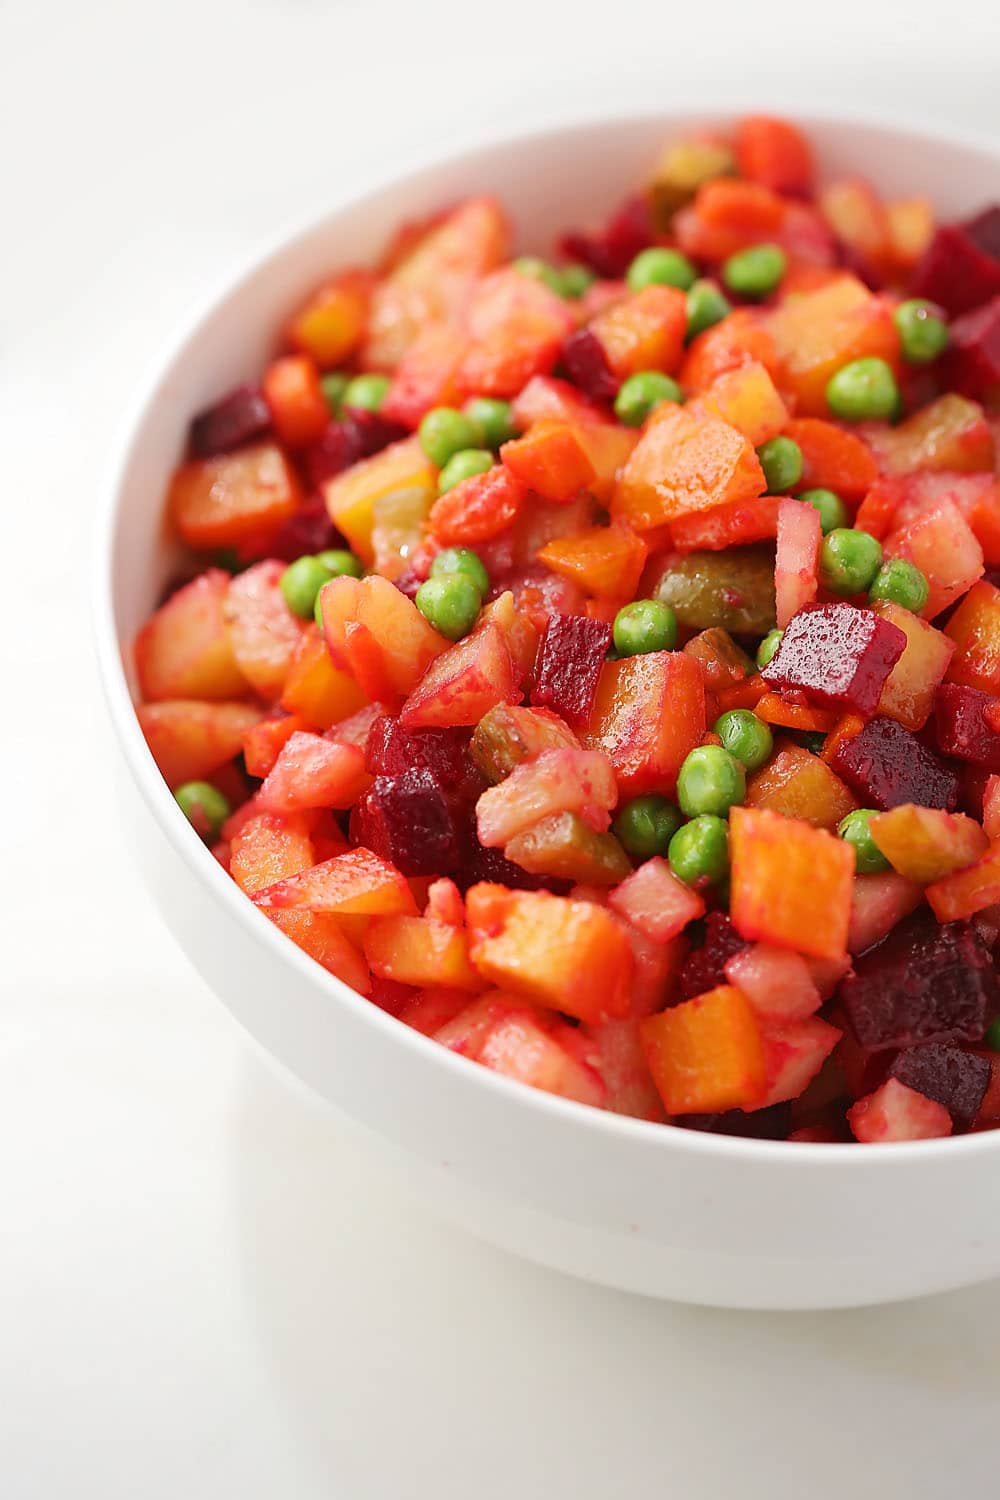 a white bowl filled with the salad with beets and pickles